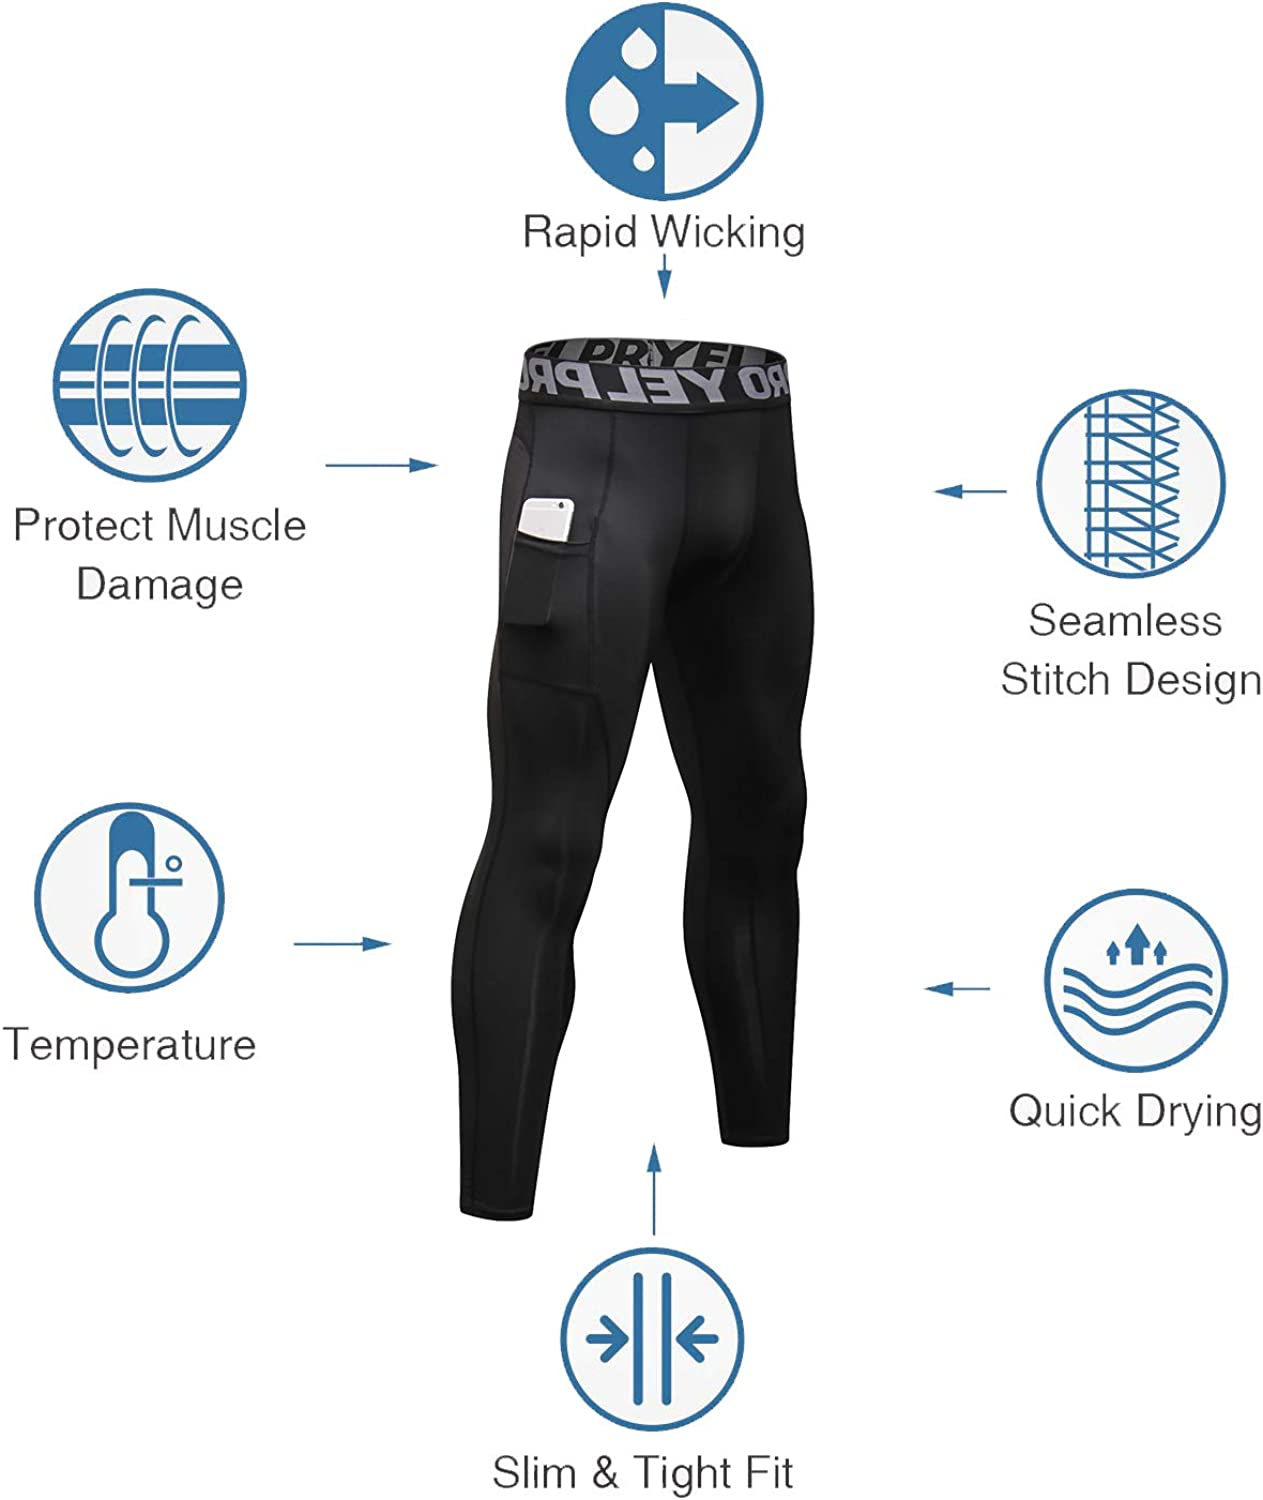 YUSHOW 2 Pack Mens Compression Leggings Cool Dry Sports Running Tights Base Layer Bottom Cycling Pants for Workout Athletic Training Gym